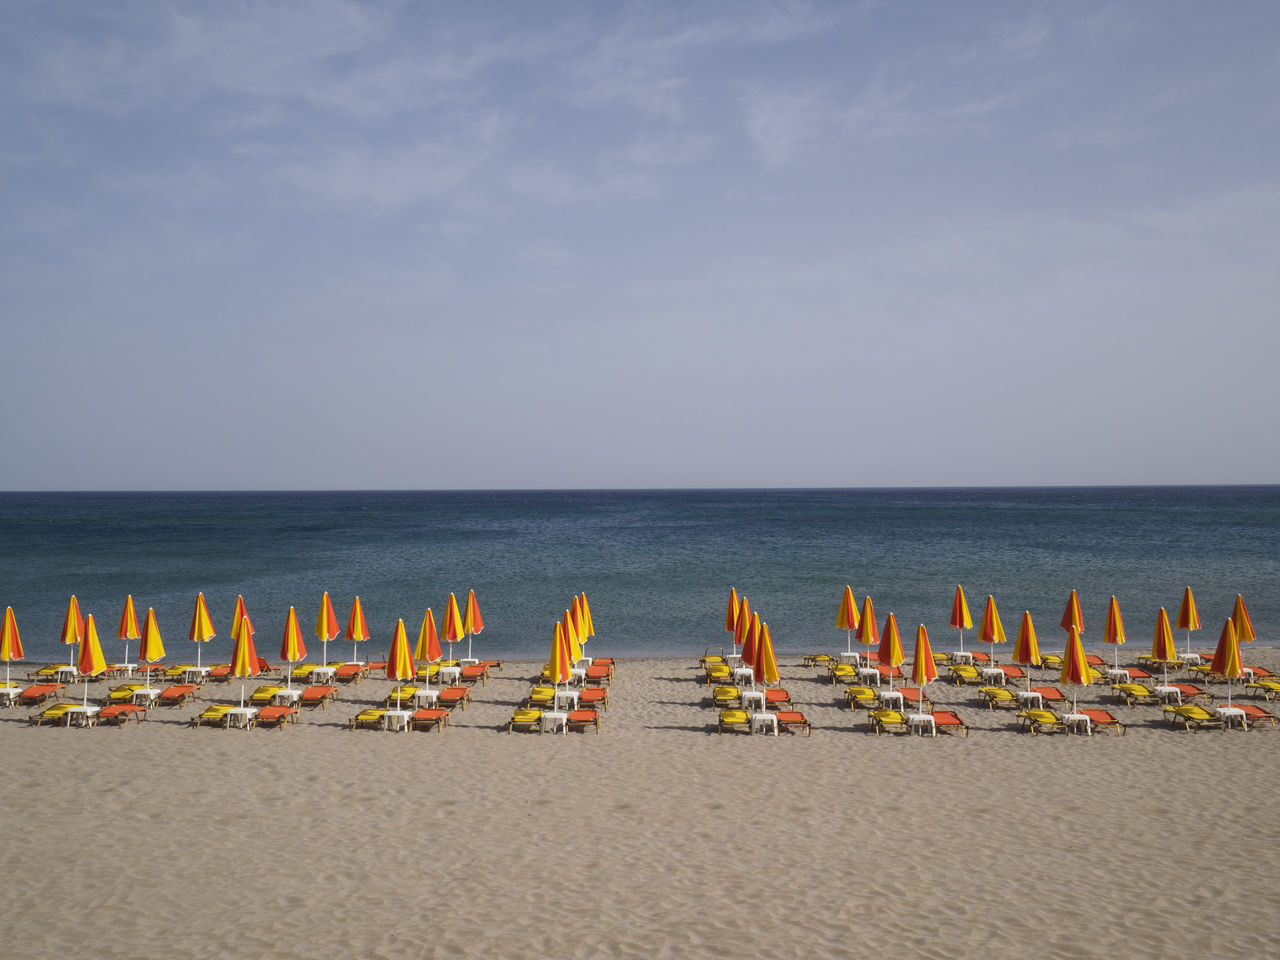 beach at Rethymno Crete with the umbrellas and loungers set out for the day Beach Beach Umbrella In A Row Protection Sand Sea Summer Sun Lounger Tranquility Umbrella Vacations